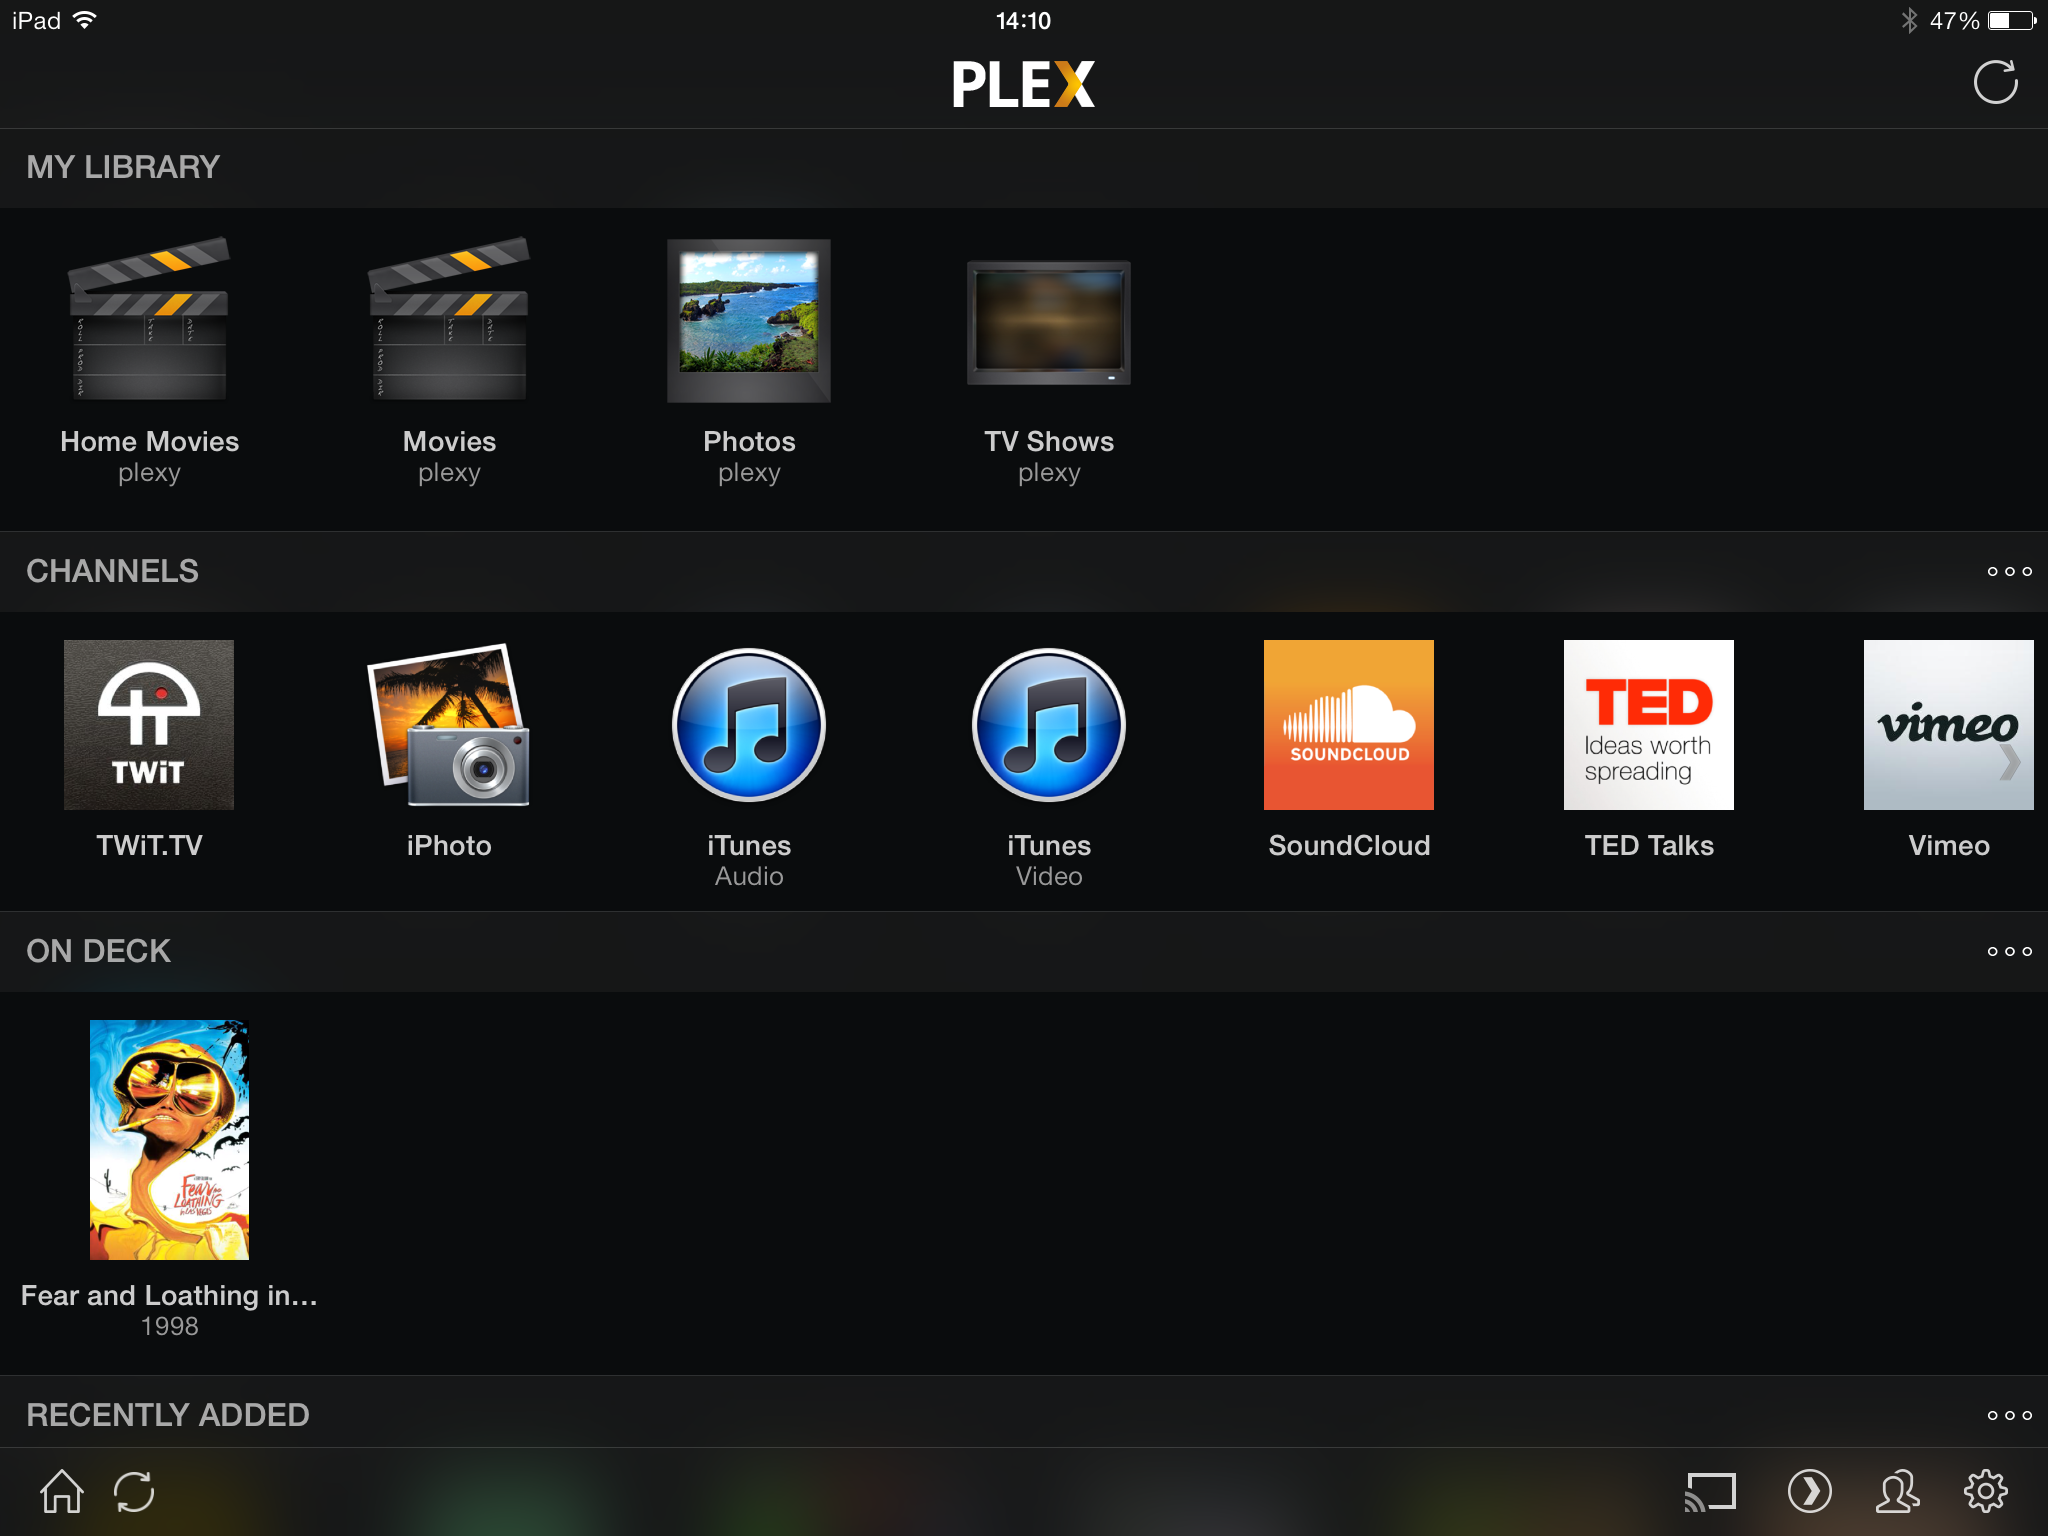 Figure 4: The Plex interface in iOS is similar to the Web client.